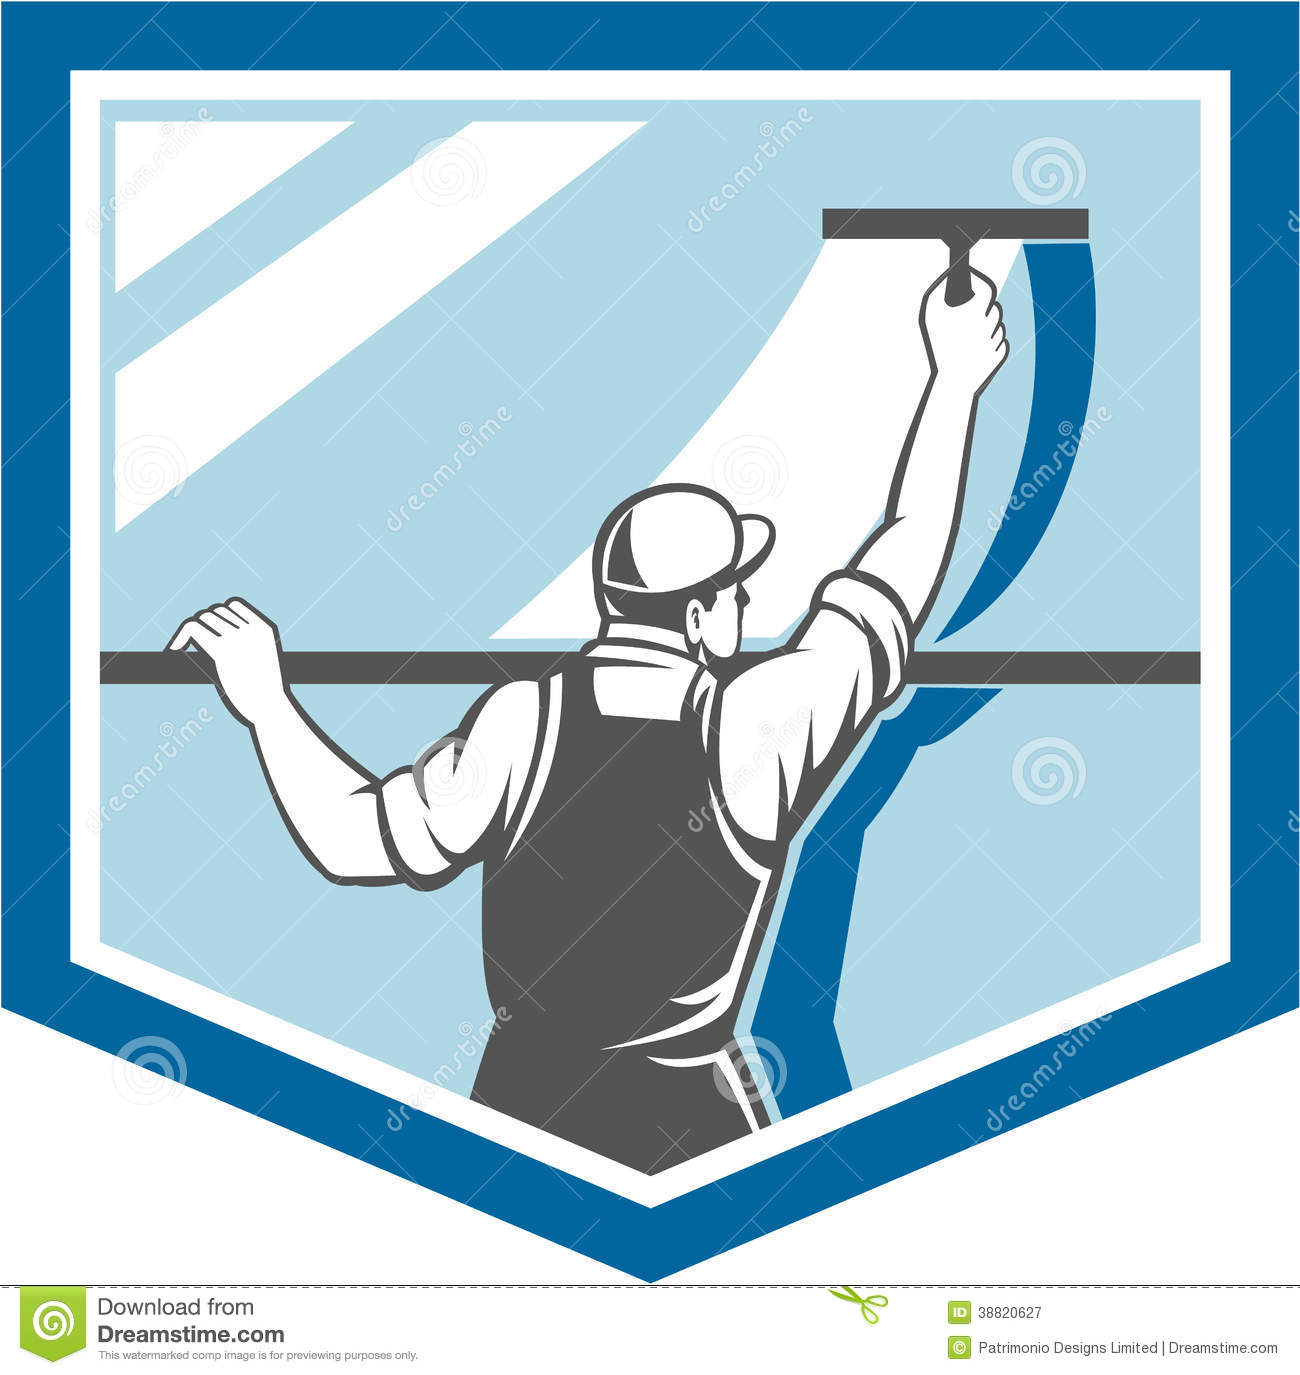 Squeegee Stock Illustrations.